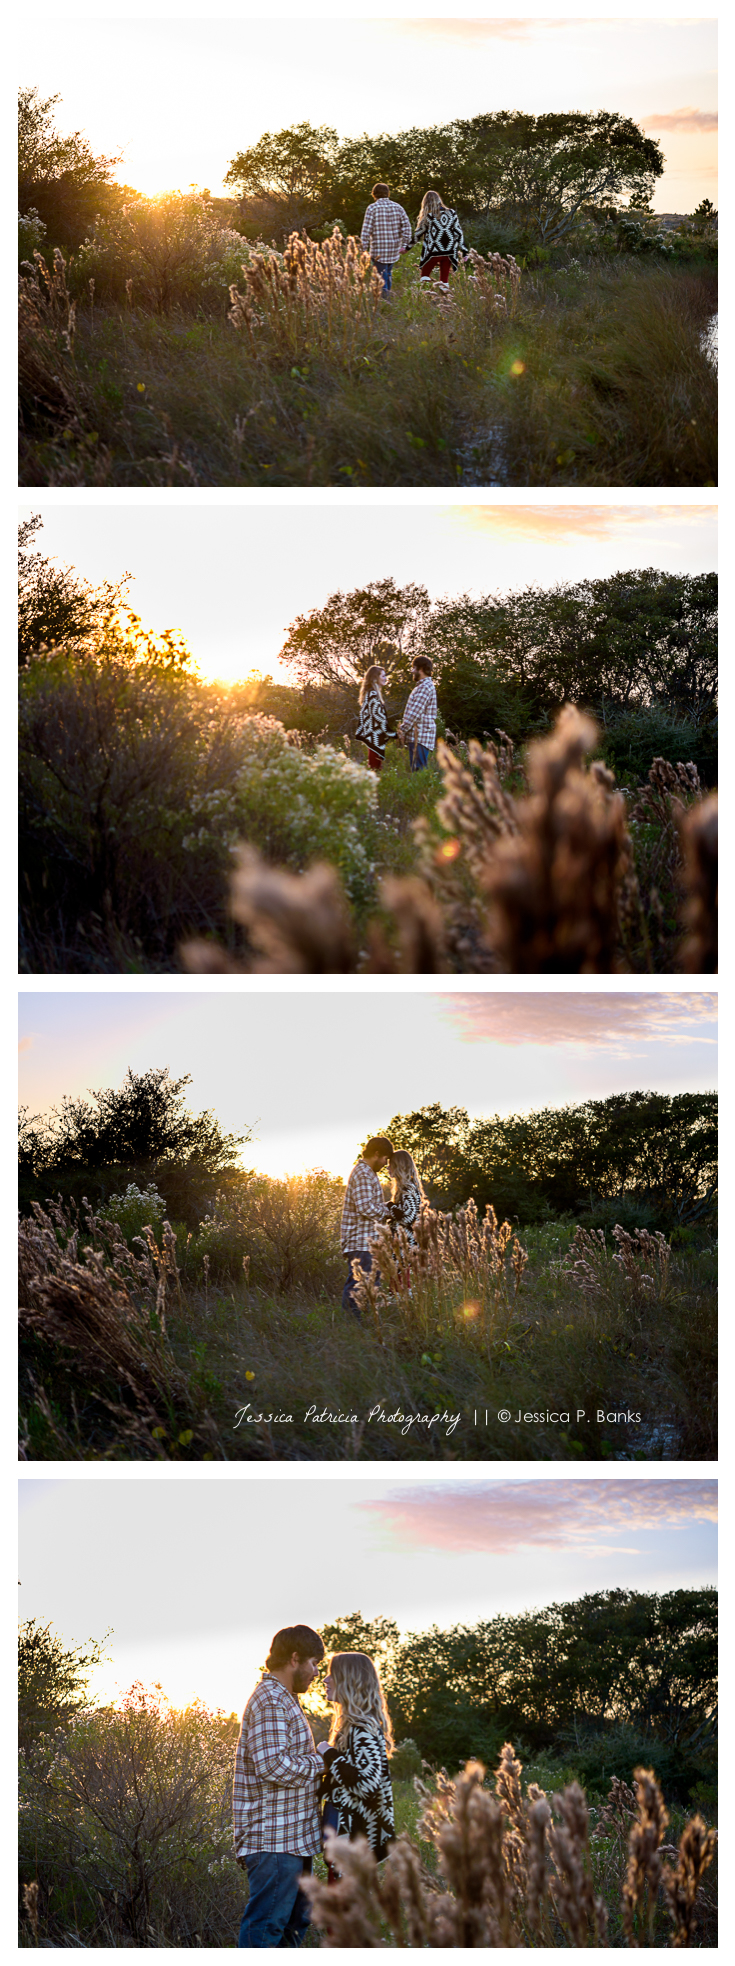 Styled Engagement Session -  JPB Photography by Jessica P. Banks - Jessica Patricia Photography - Norfolk, VA